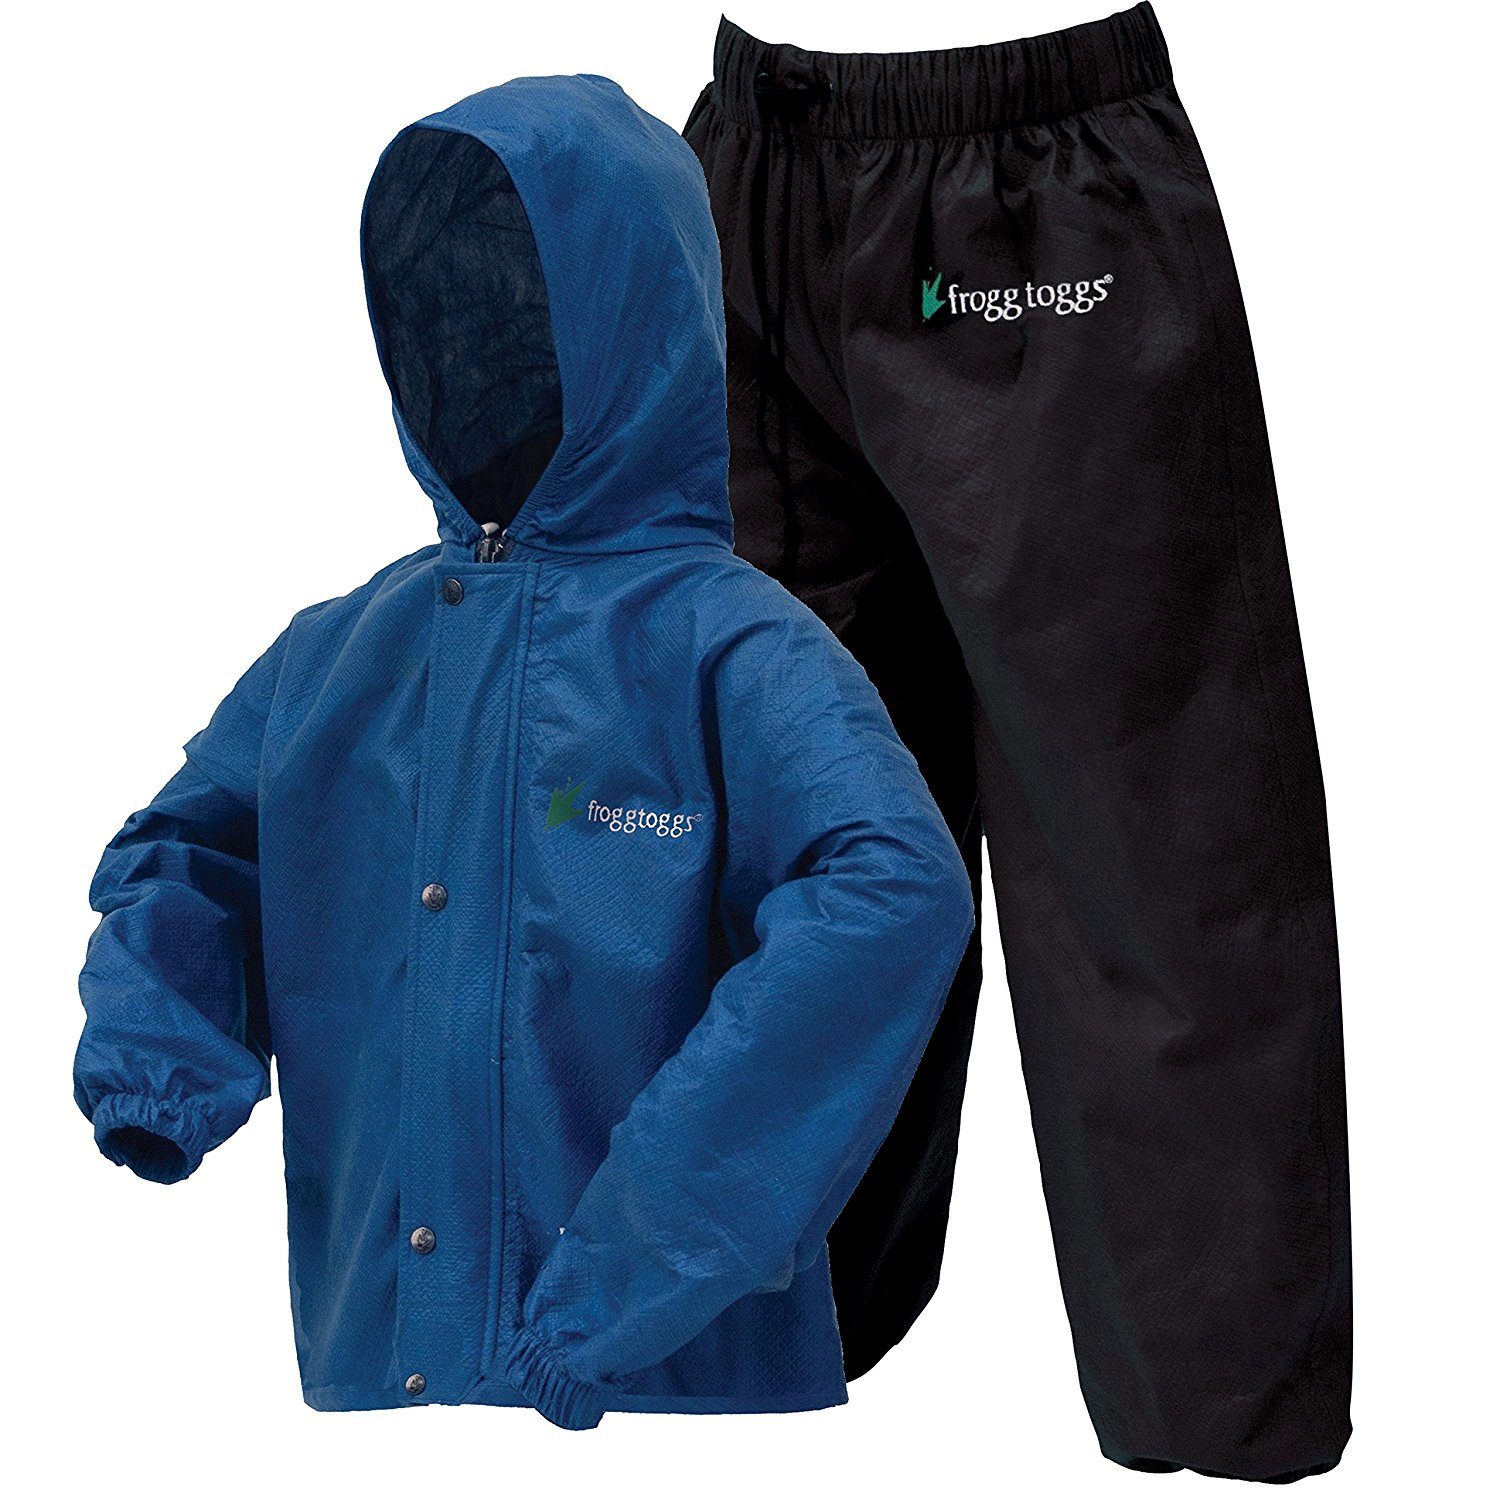 Polly Woggs Youth Rain Suit, Medium, Blueberry By Frogg T...